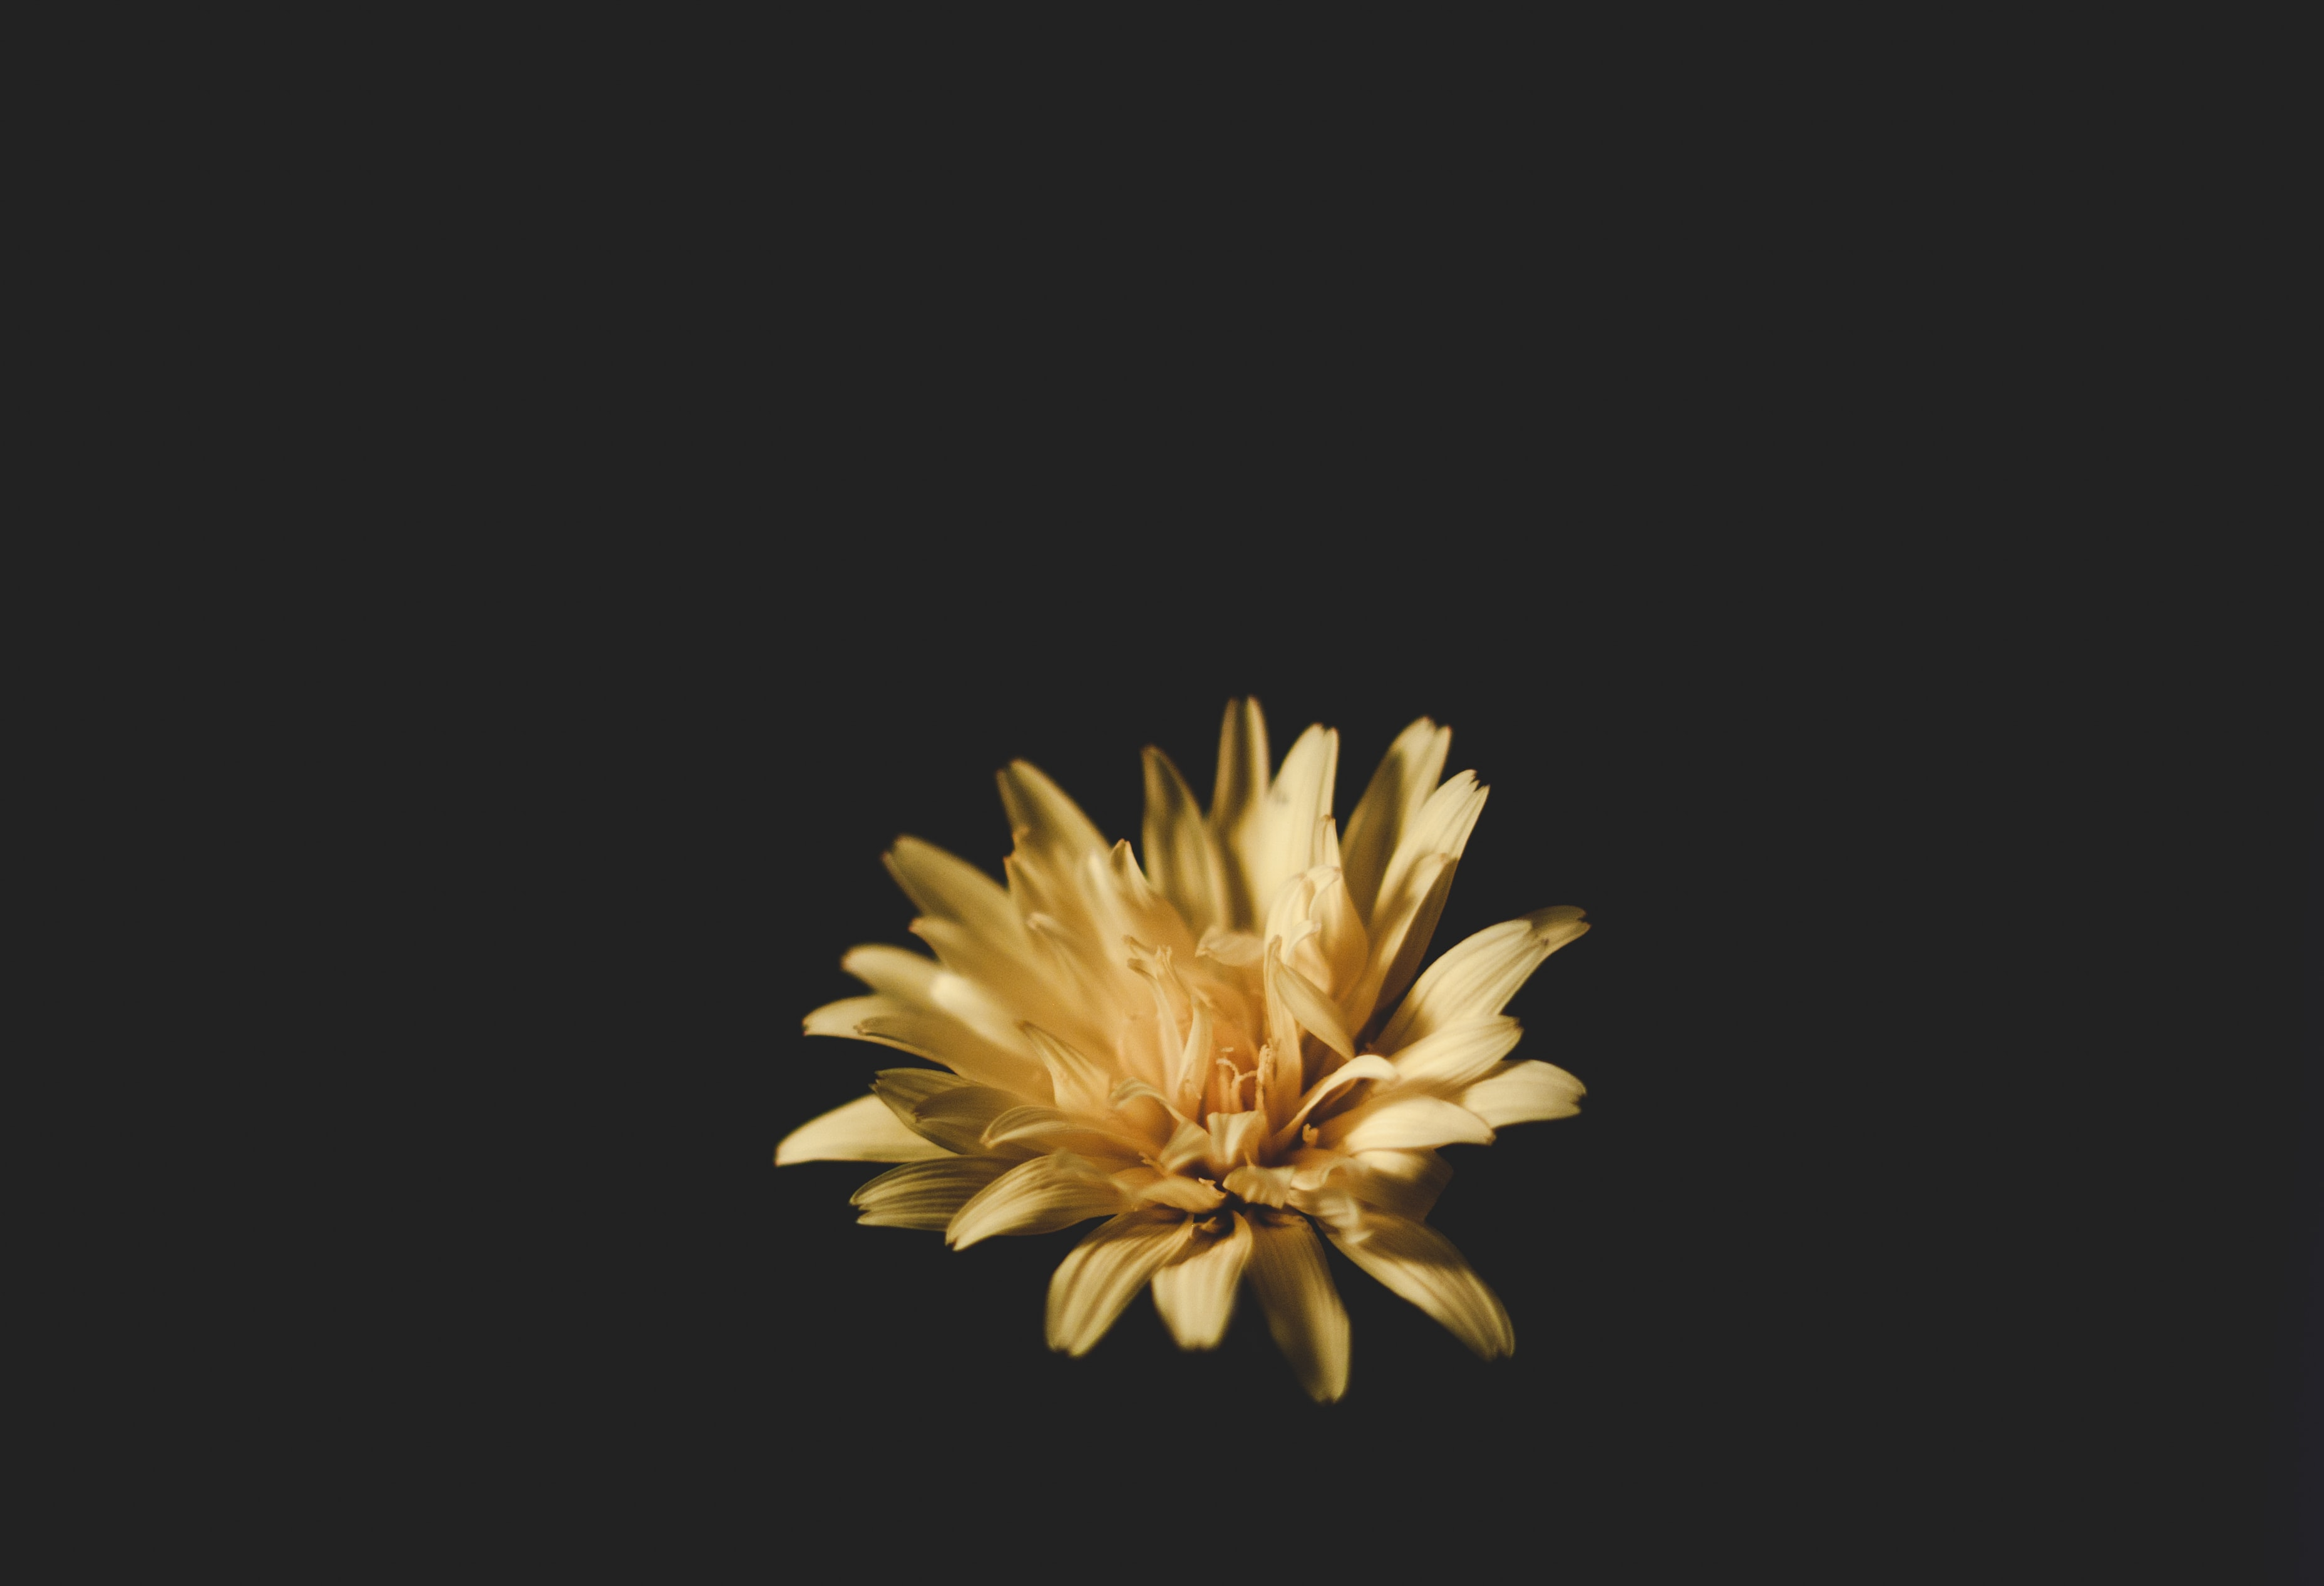 A light orange flower with delicate petals against a black background